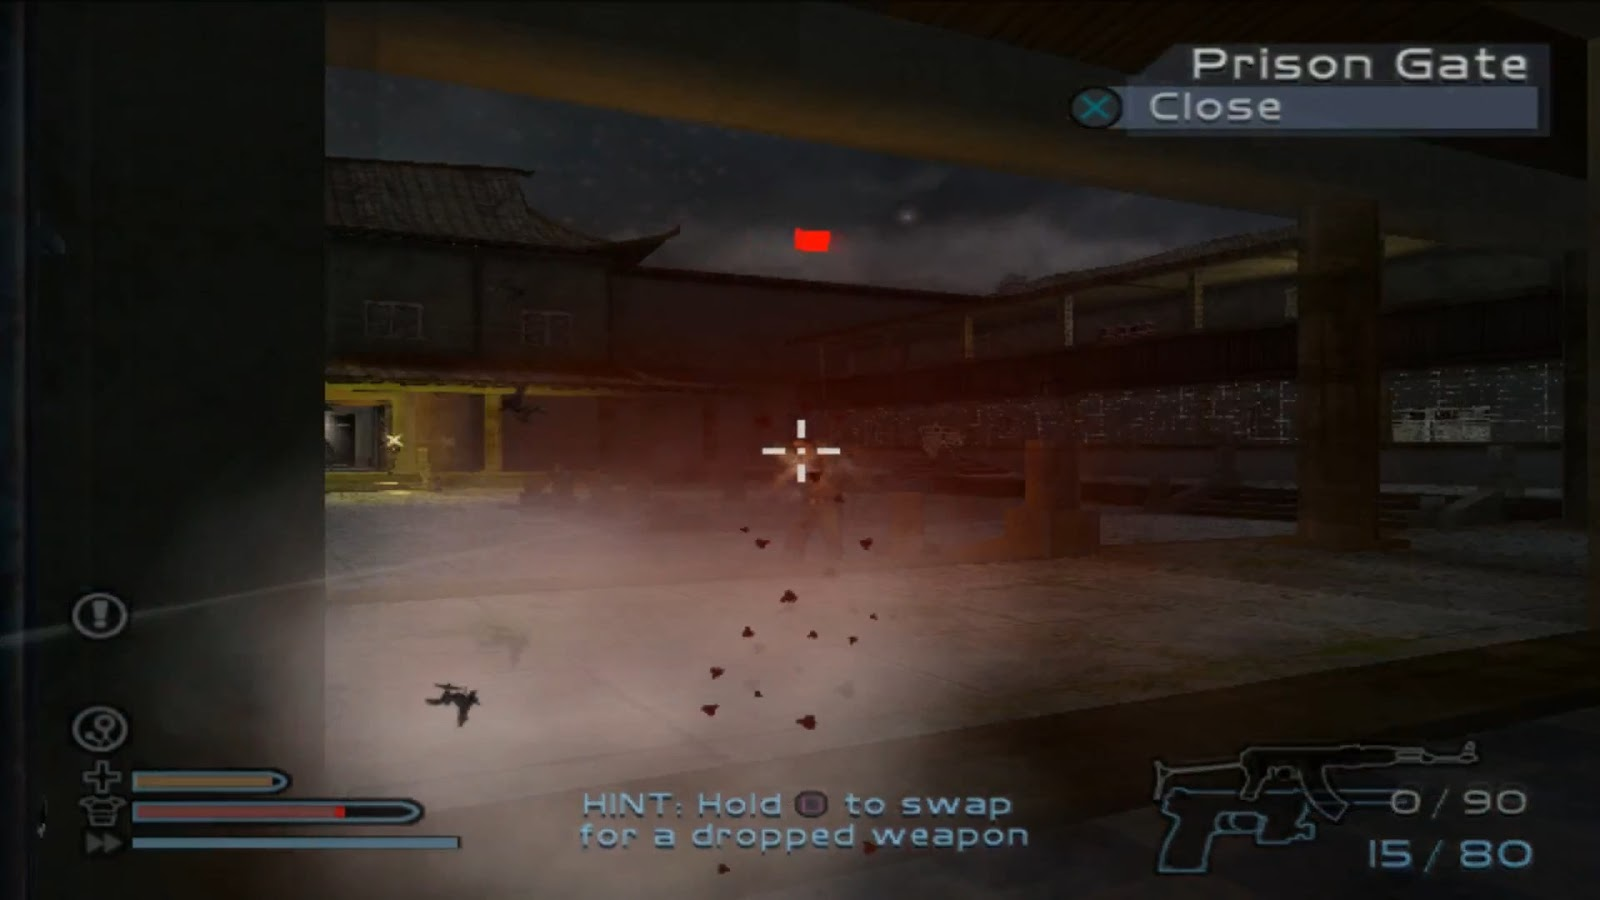 ps2 spy game